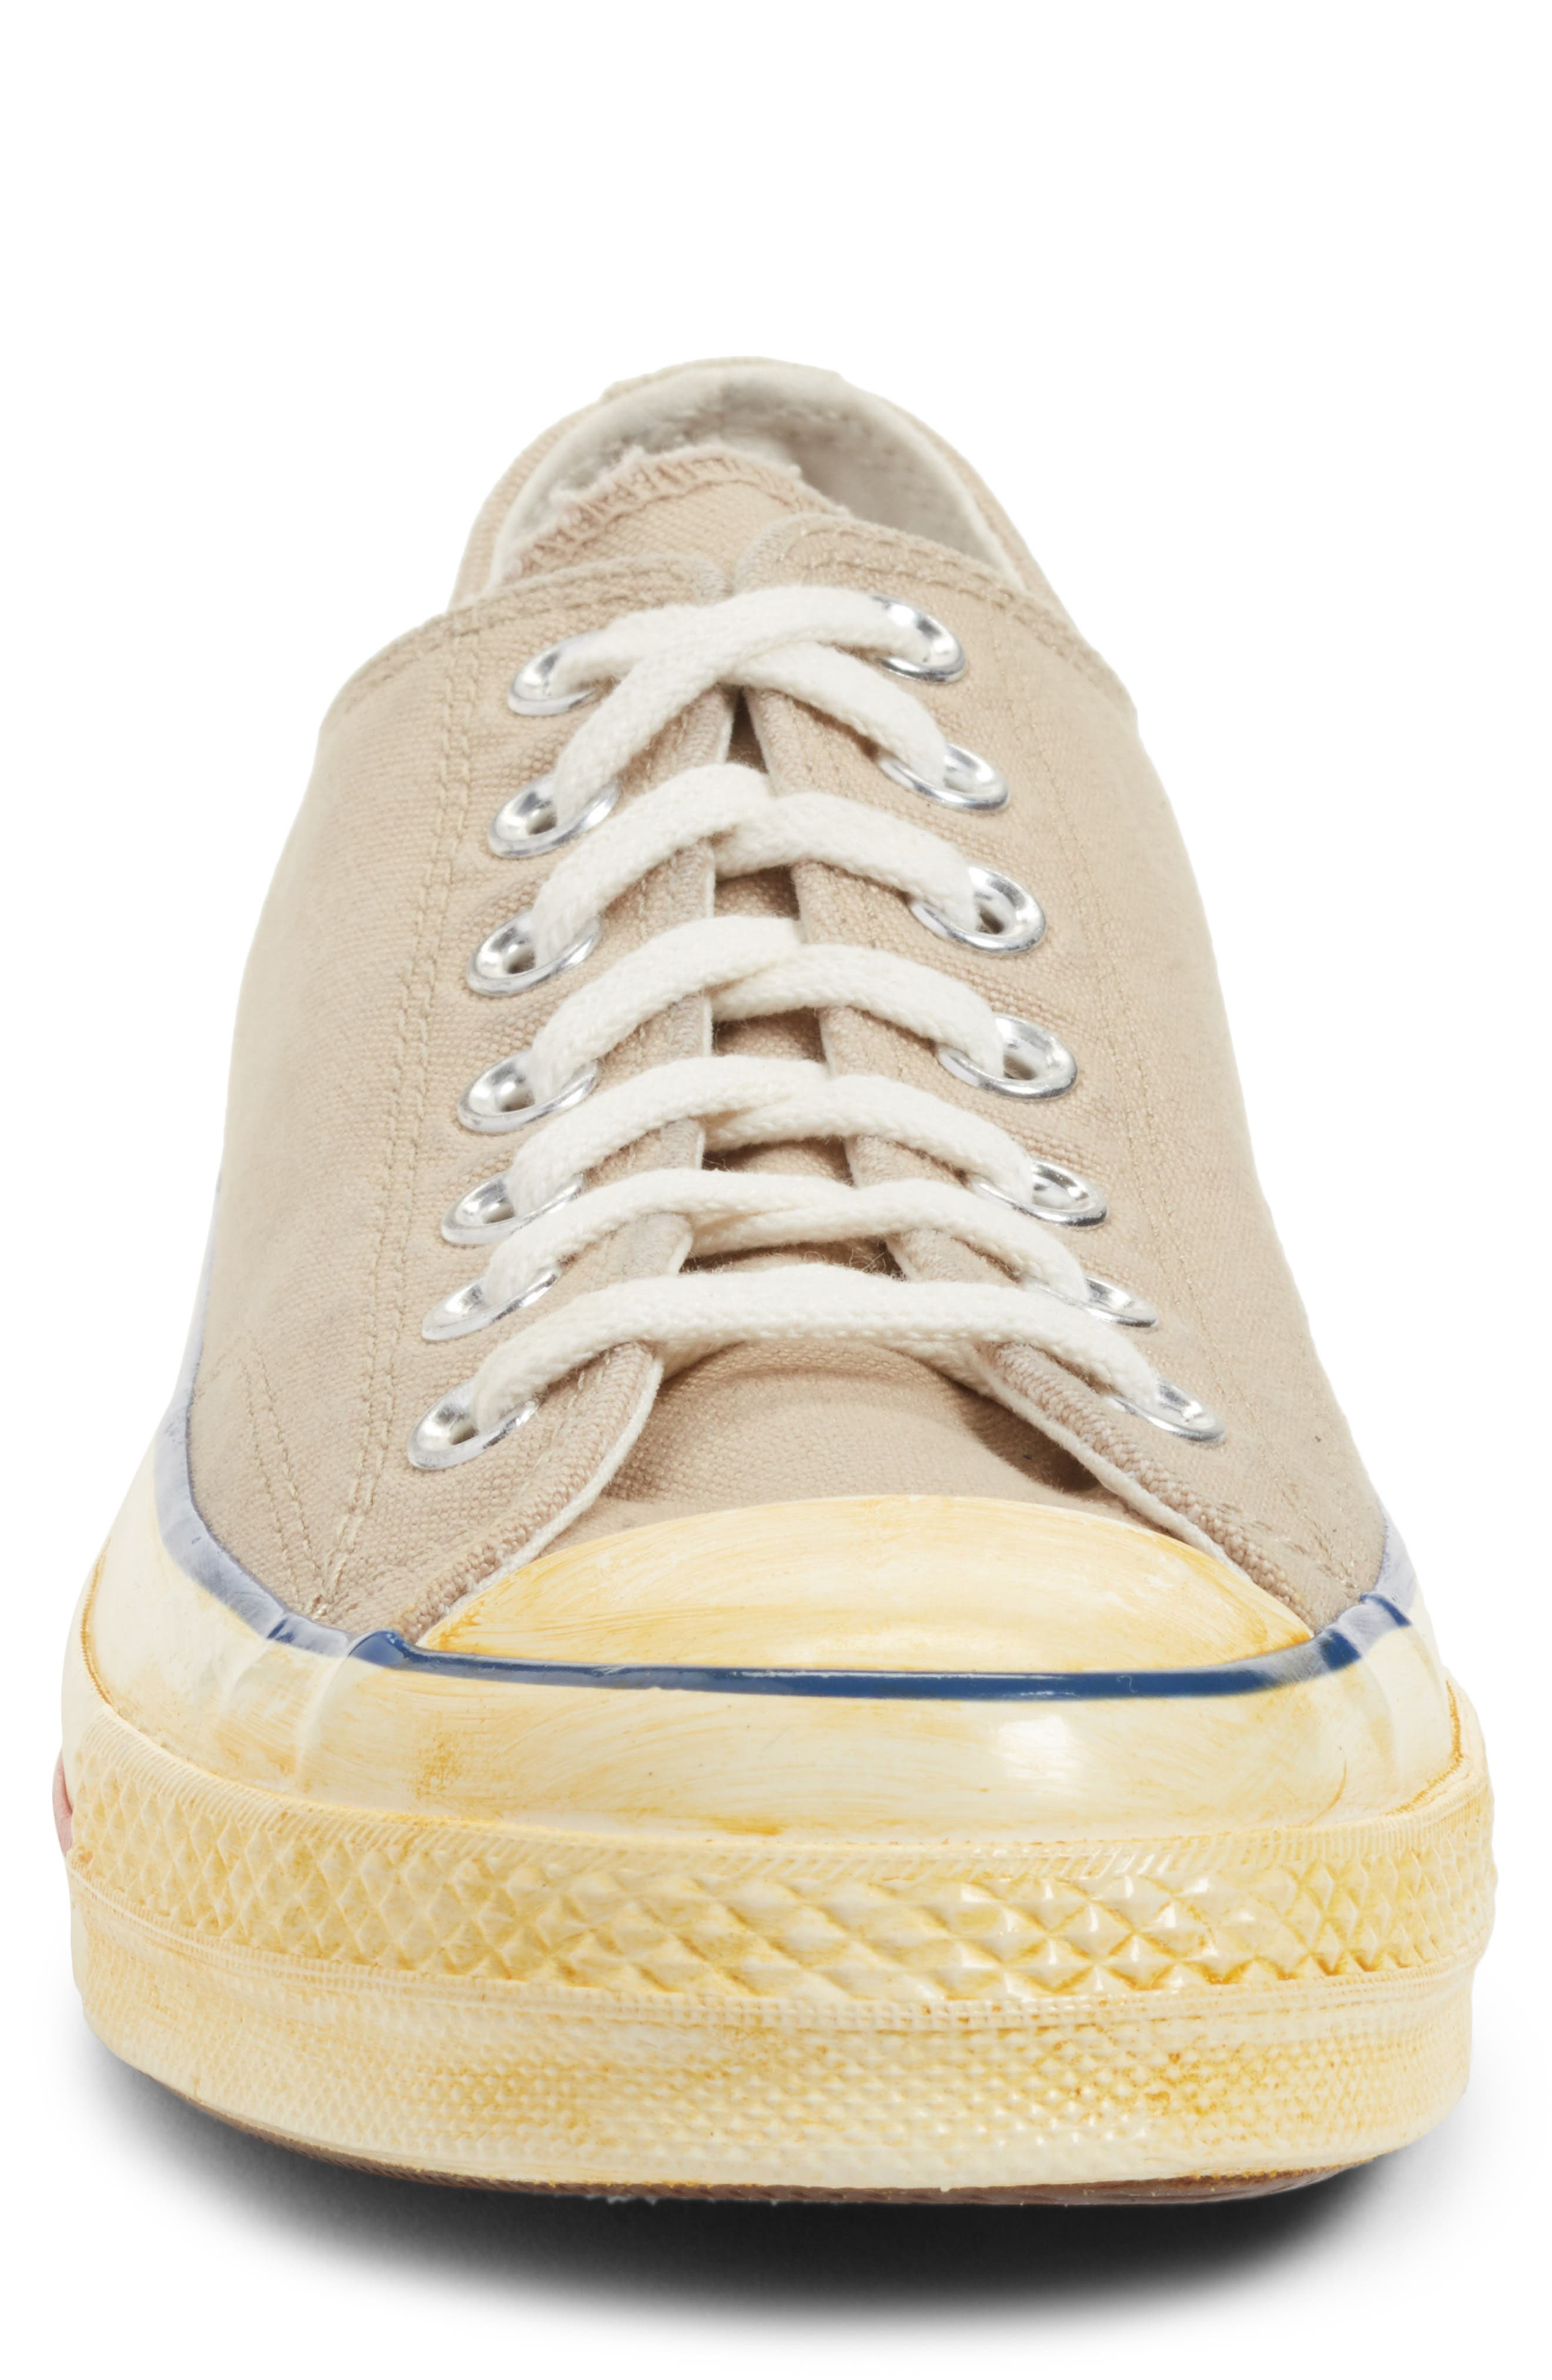 Chuck Taylor<sup>®</sup> All Star<sup>®</sup> 70 Low Top Sneaker,                             Alternate thumbnail 4, color,                             270